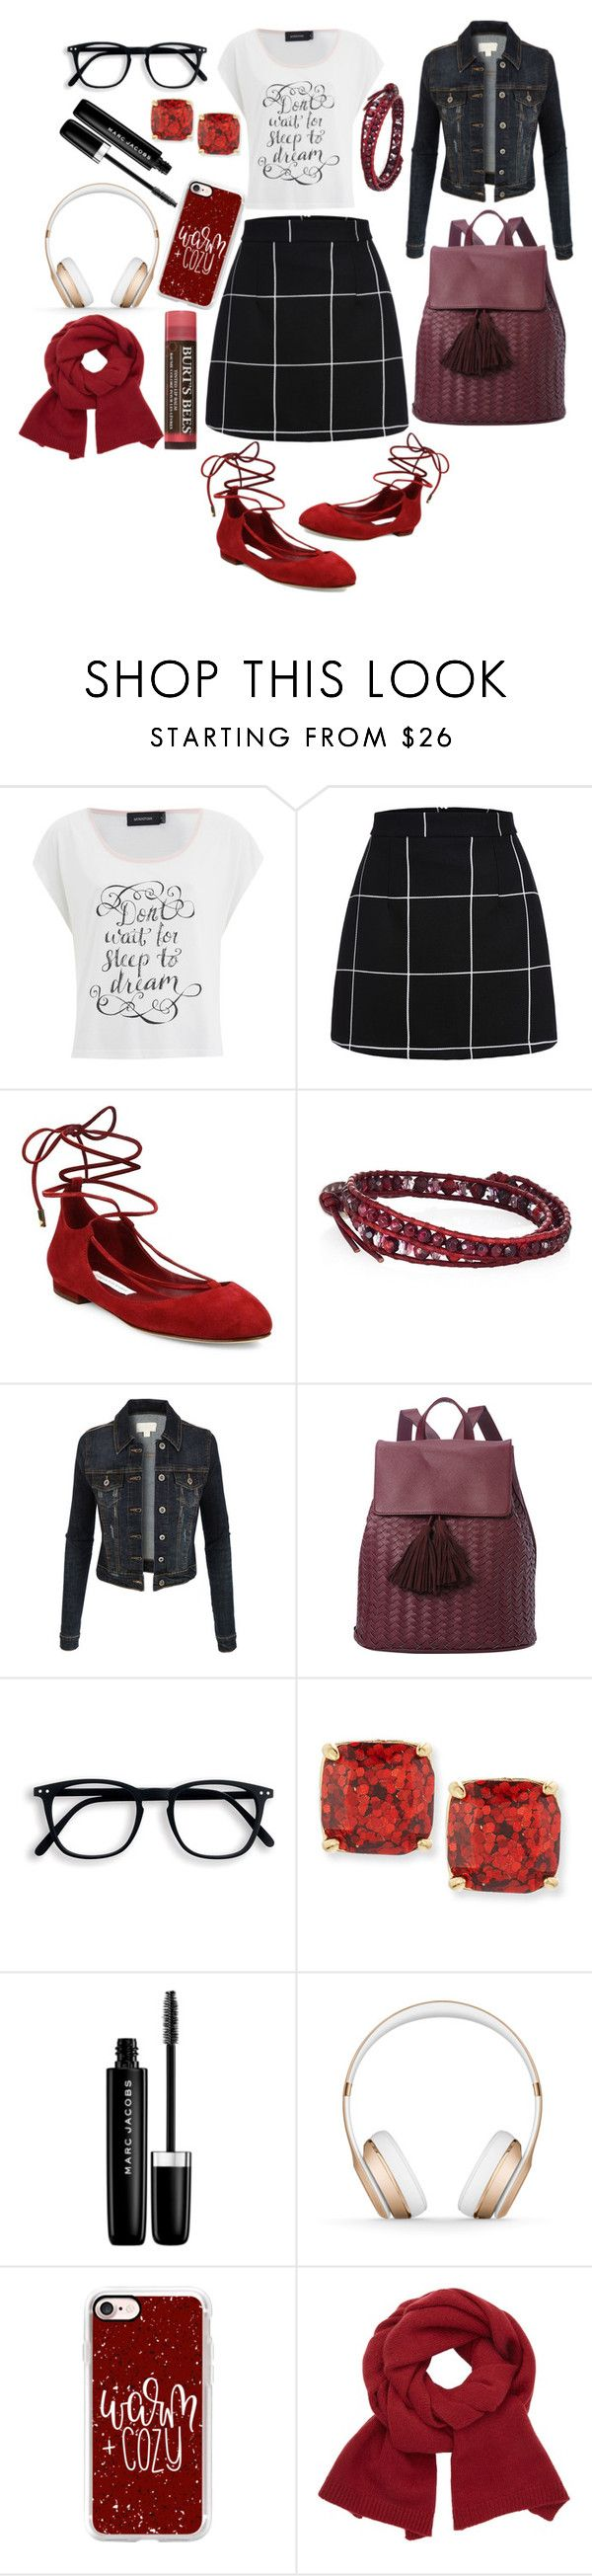 """""""School's out for the holidays"""" by pulseofthematter ❤ liked on Polyvore featuring MINKPINK, Diane Von Furstenberg, Chan Luu, LE3NO, Deux Lux, Kate Spade, Marc Jacobs, Beats by Dr. Dre, Casetify and John Lewis"""